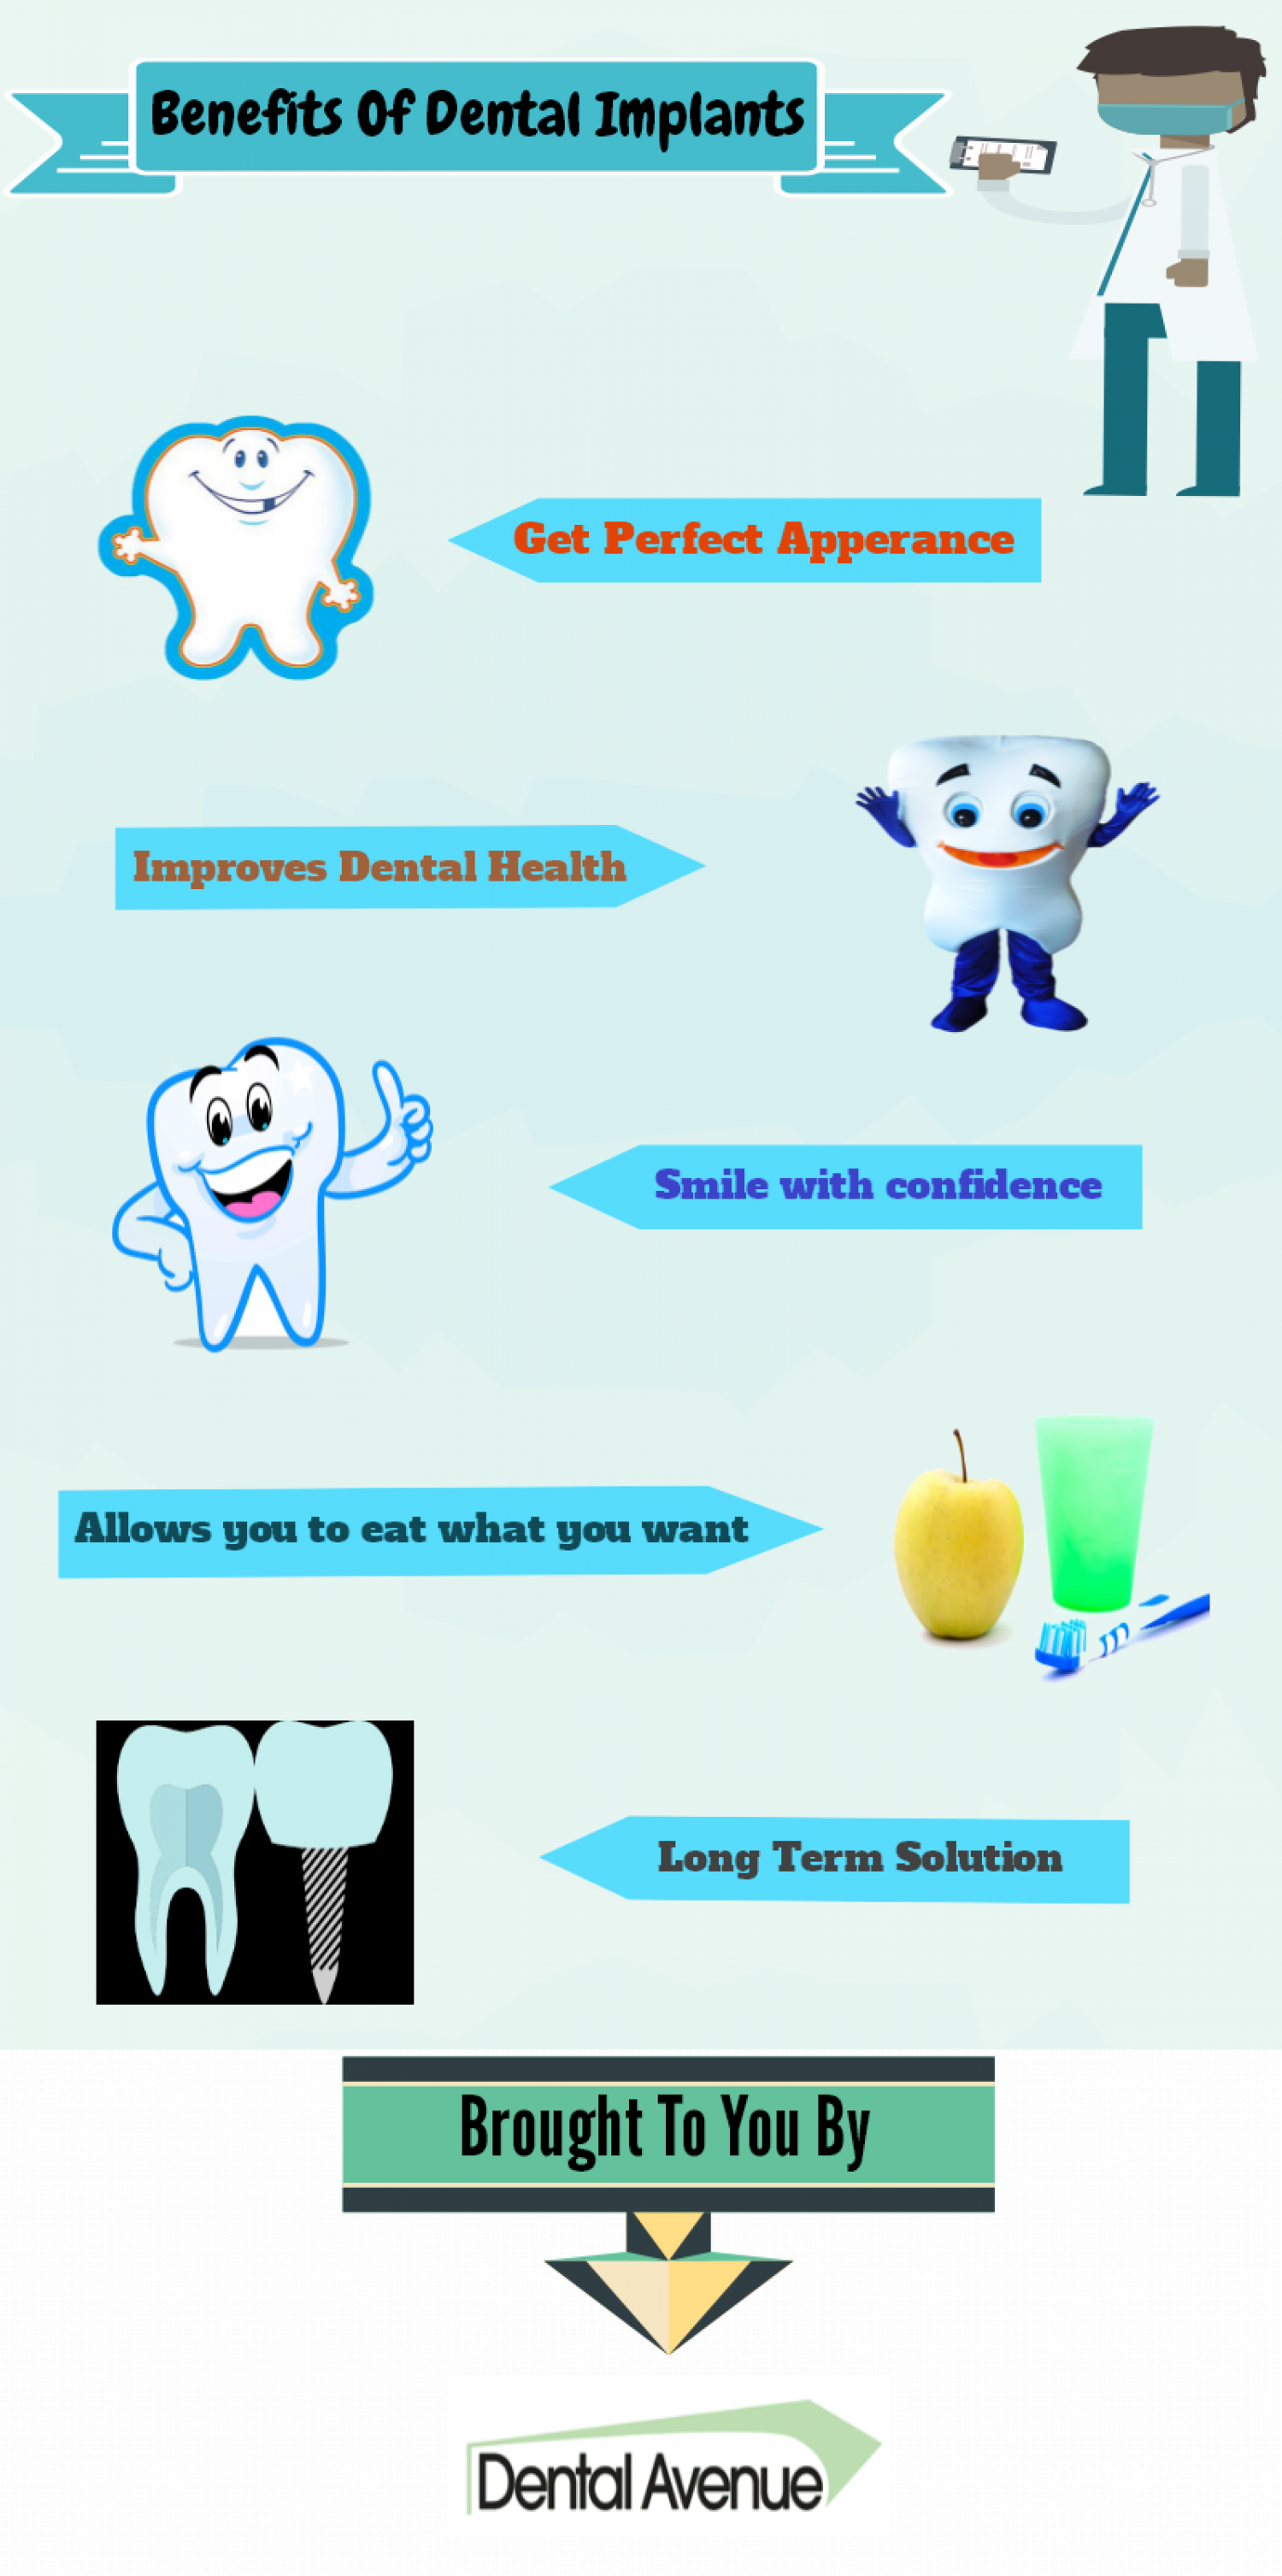 Benefits of Dental Implants Infographic